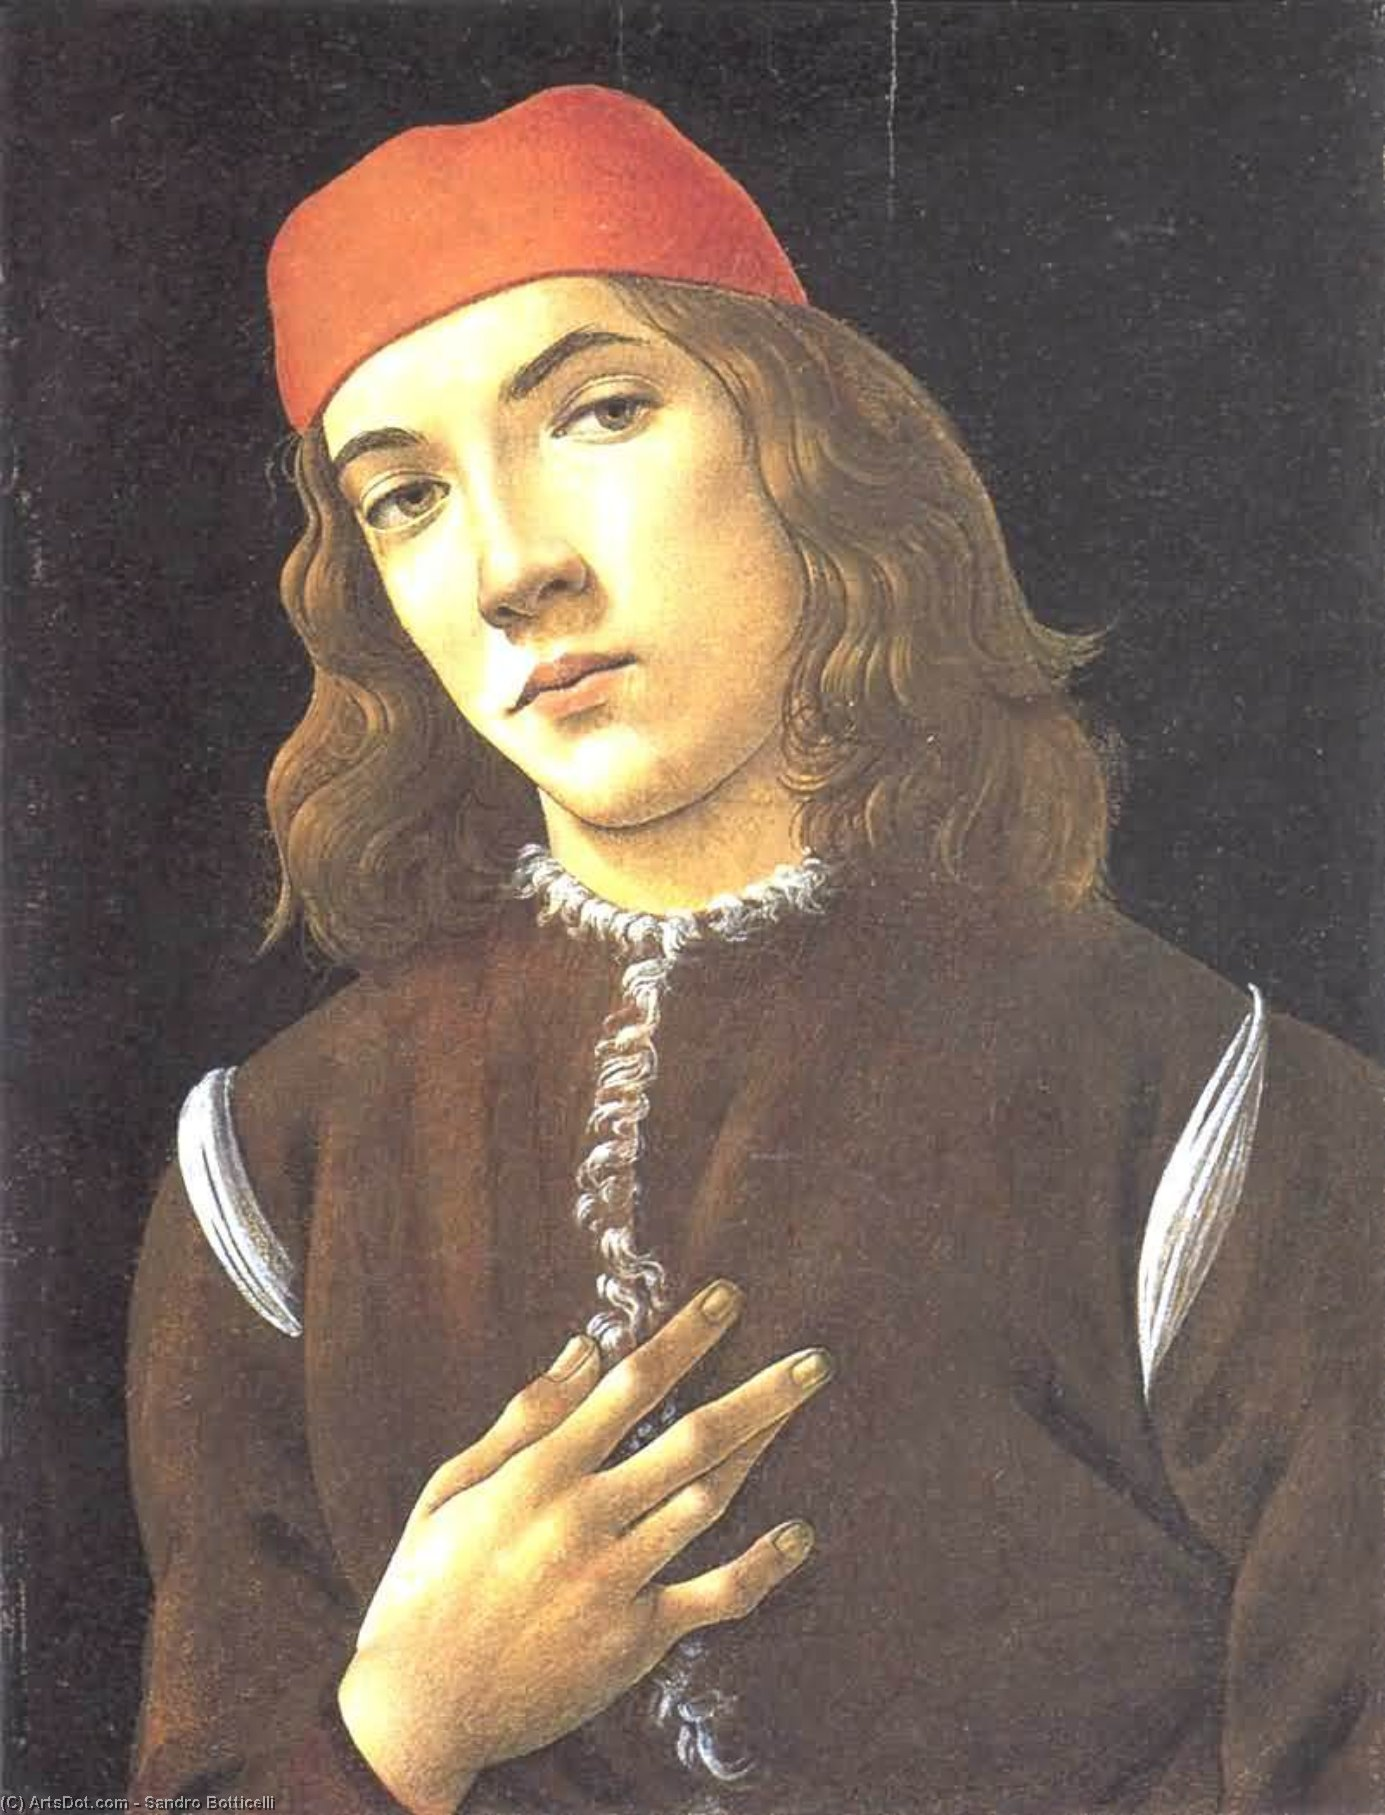 an analysis of the portrait of a young man in s red cap